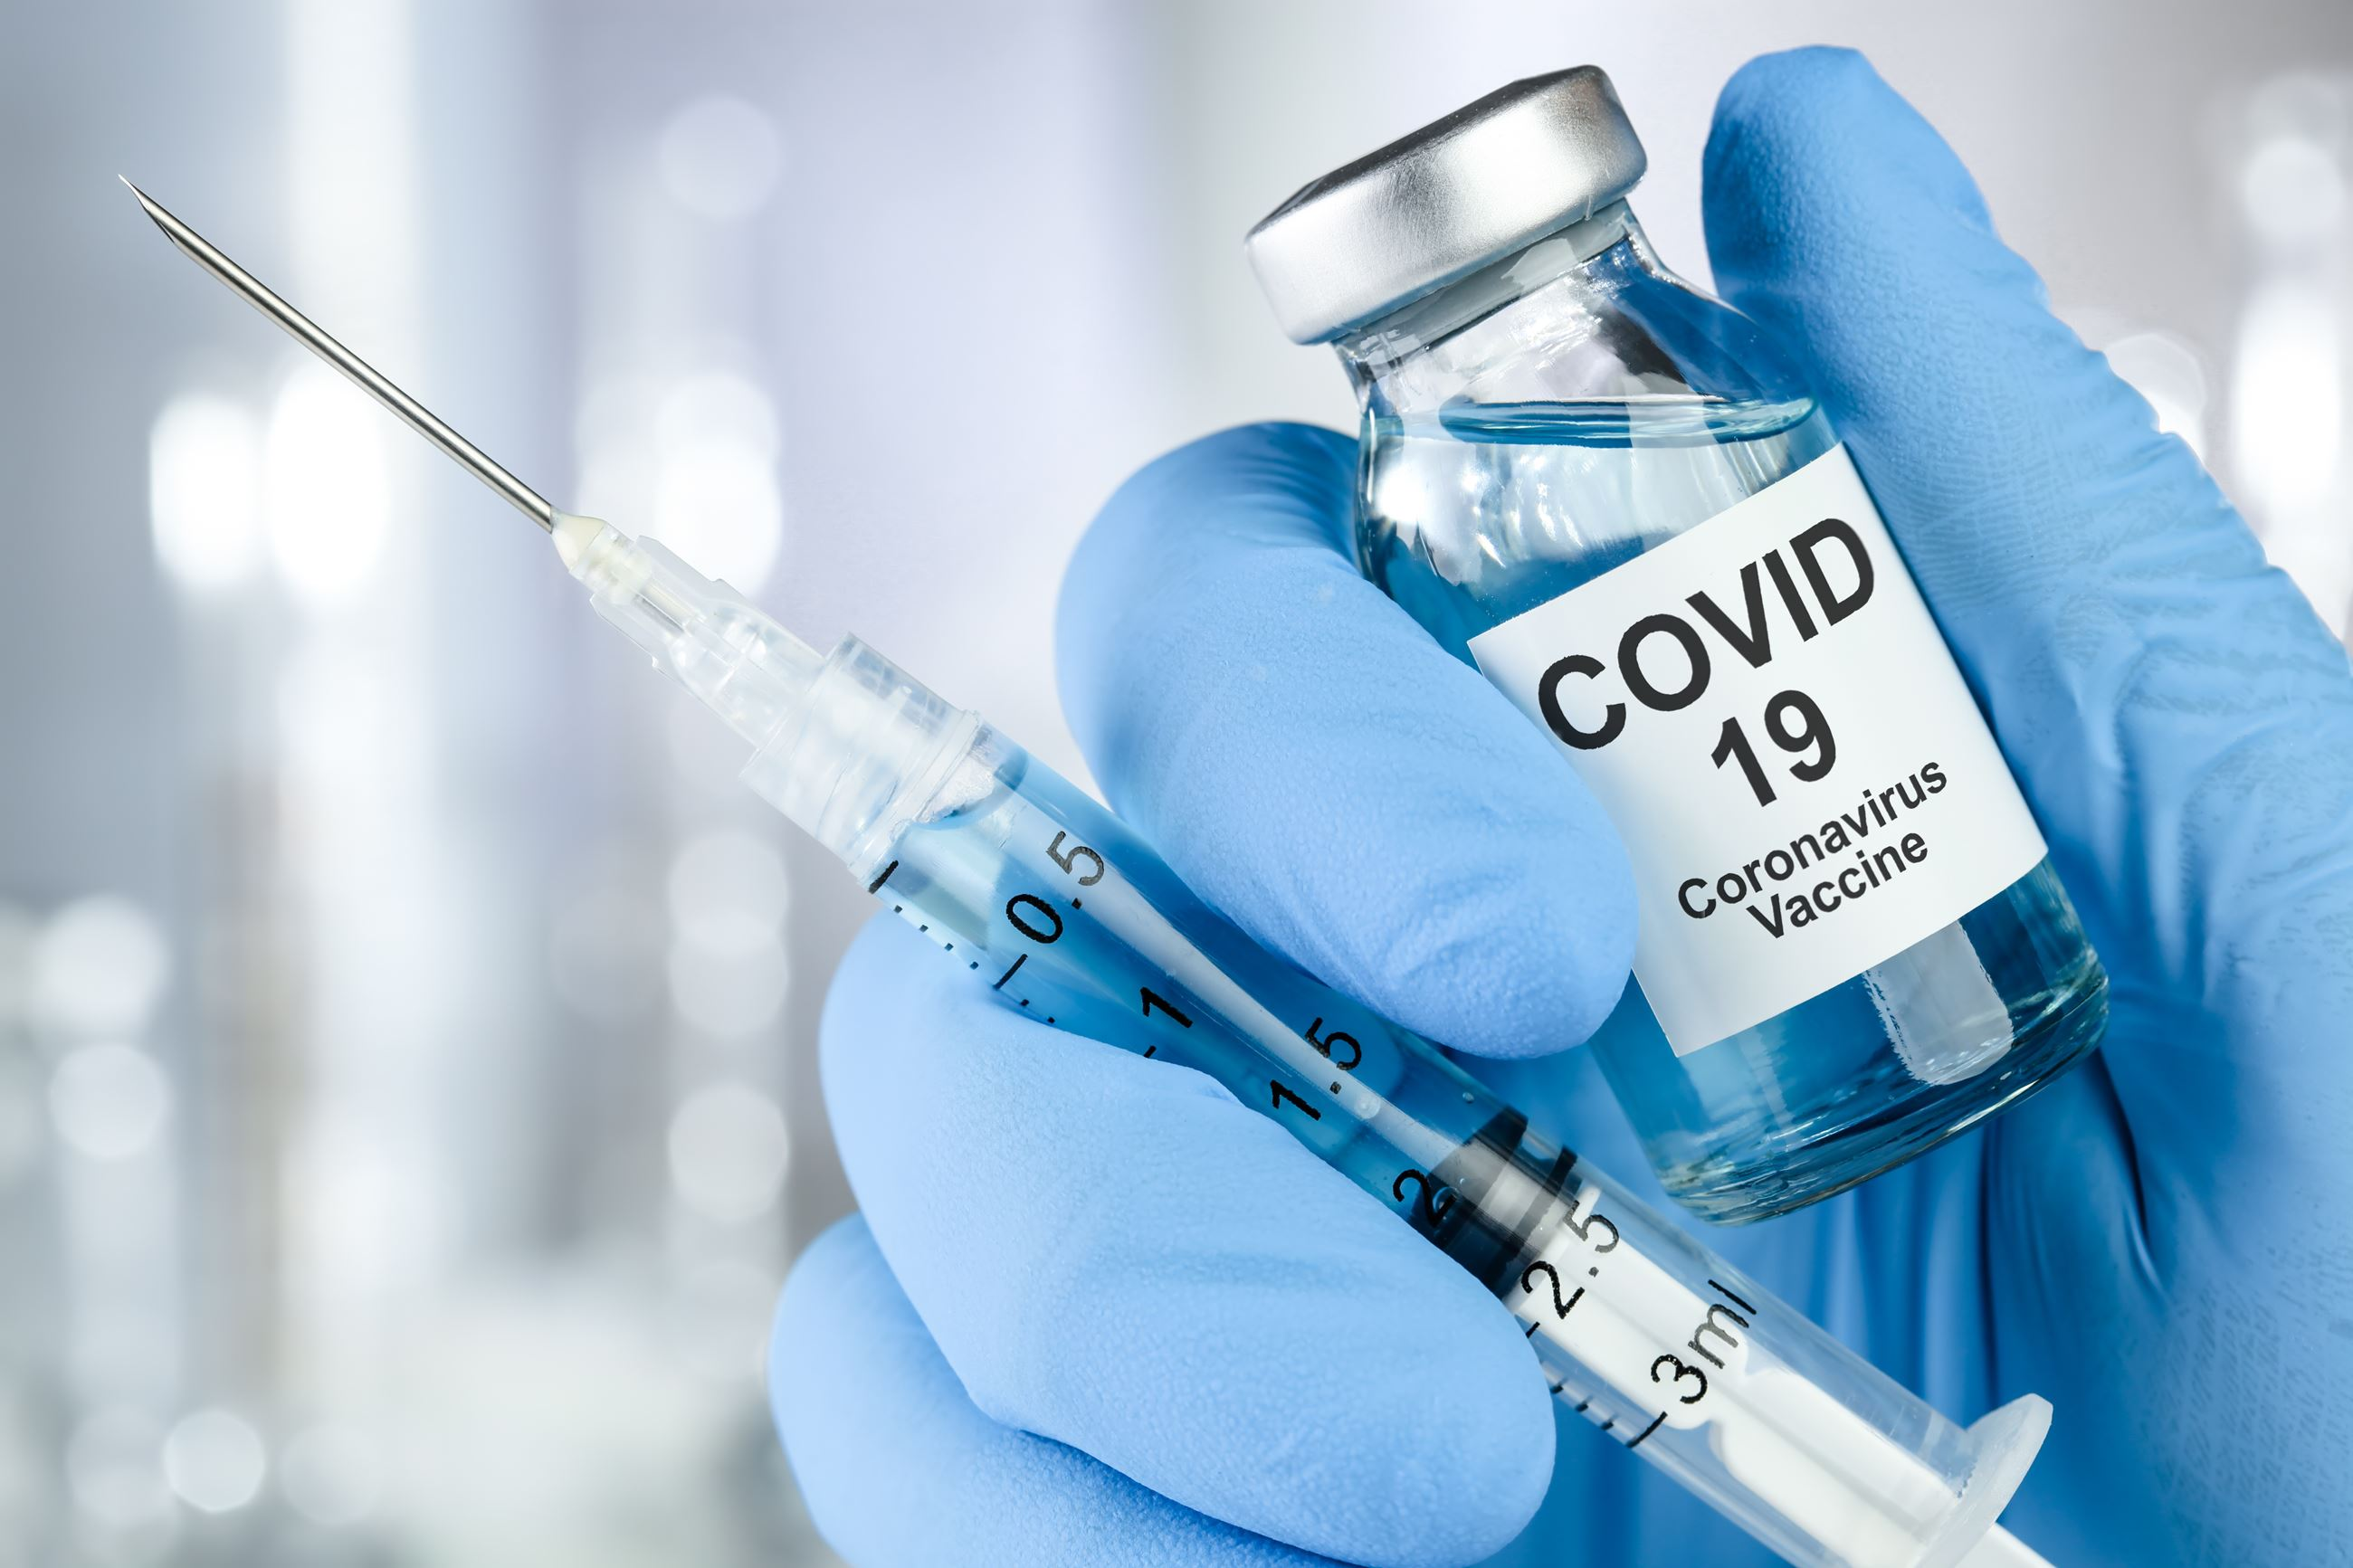 Hand in blue-glove holding COVID-19 vaccine vial and needle.